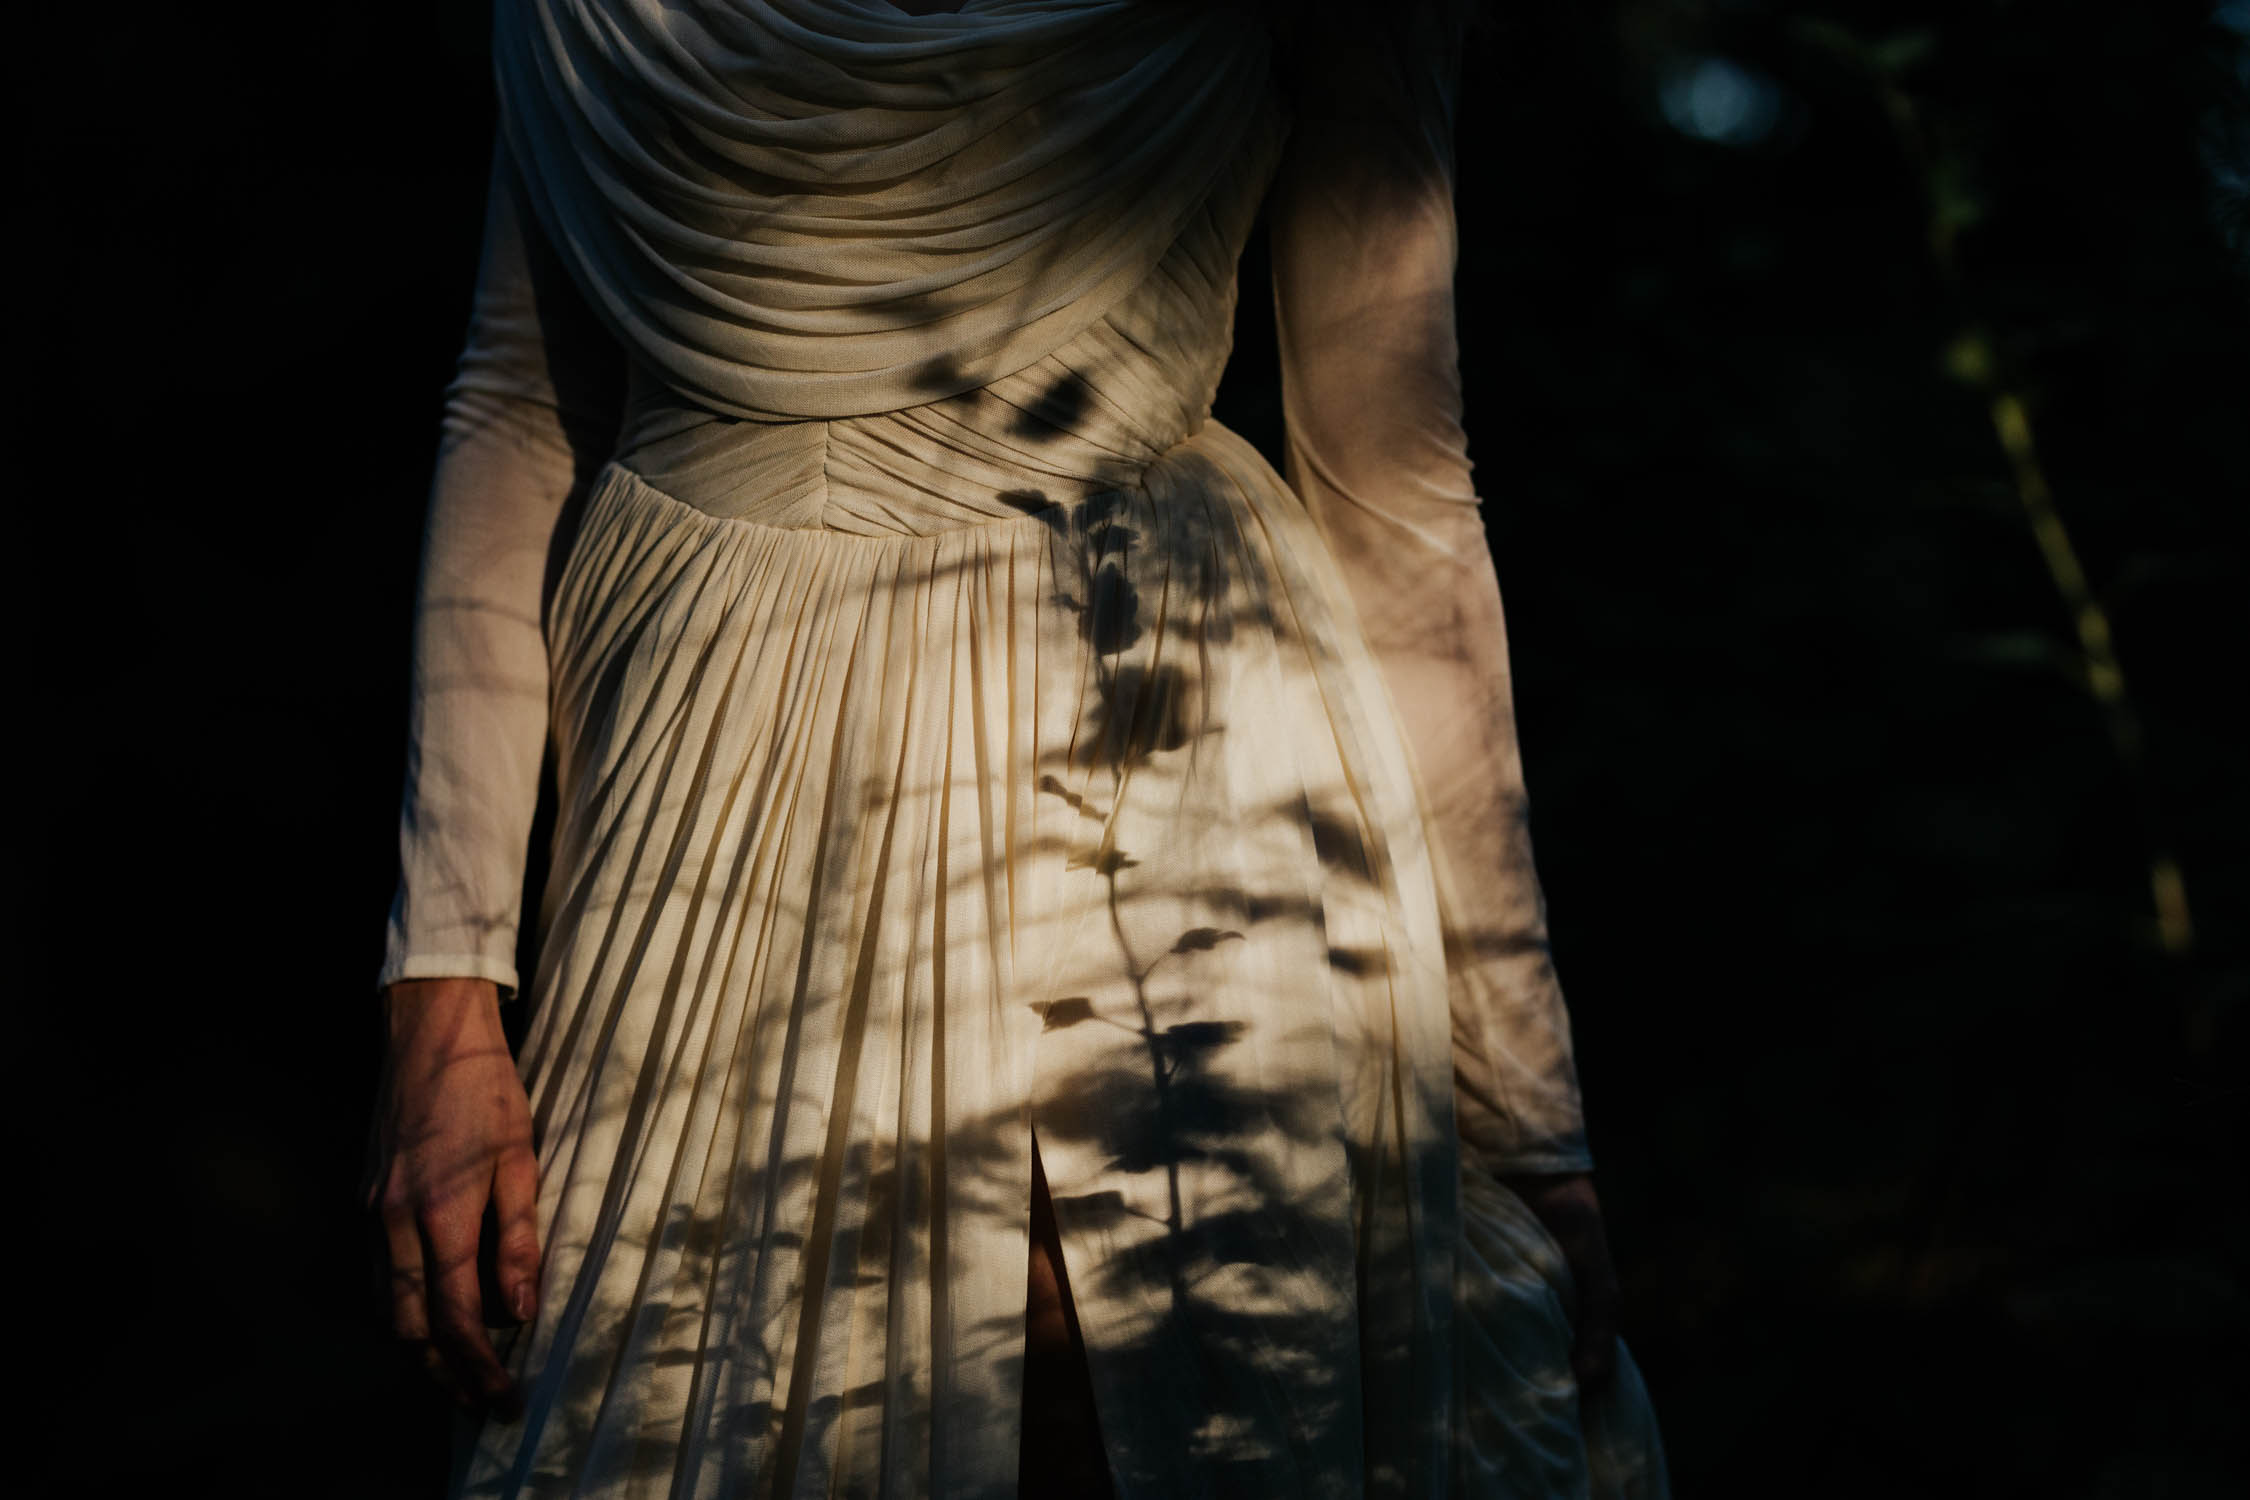 Bride standing in forest with the shadows from the forest flowers and leaves reflecting on her elegant silk wedding dress. Shadow looks like a rose.